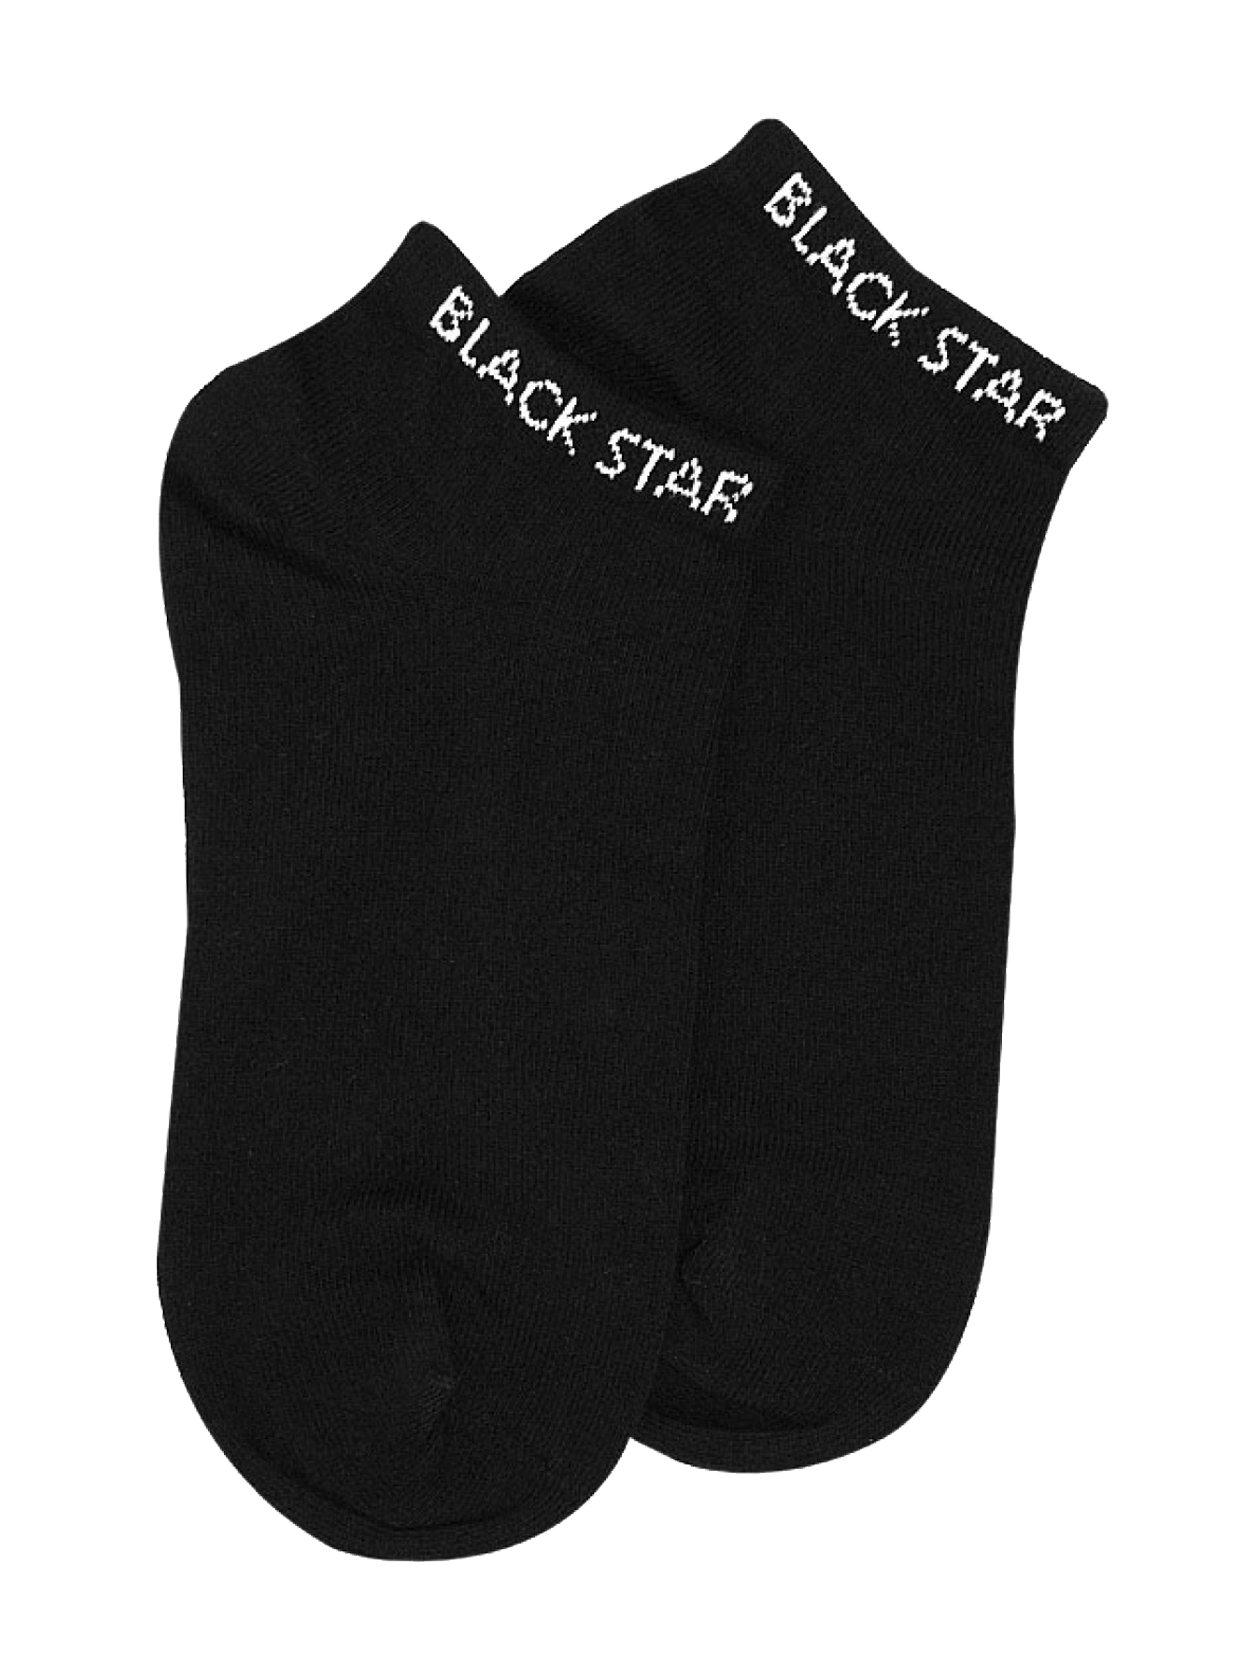 Unisex Socks BS shortUnisex sport socks by Black Star Wear. Anklets socks with Black Star branding on the elastic band. Made out of natural cotton. Perfect for everyday and sport activities.Avaliable in white, gray and black.<br><br>size: 41/42<br>color: Black<br>gender: unisex